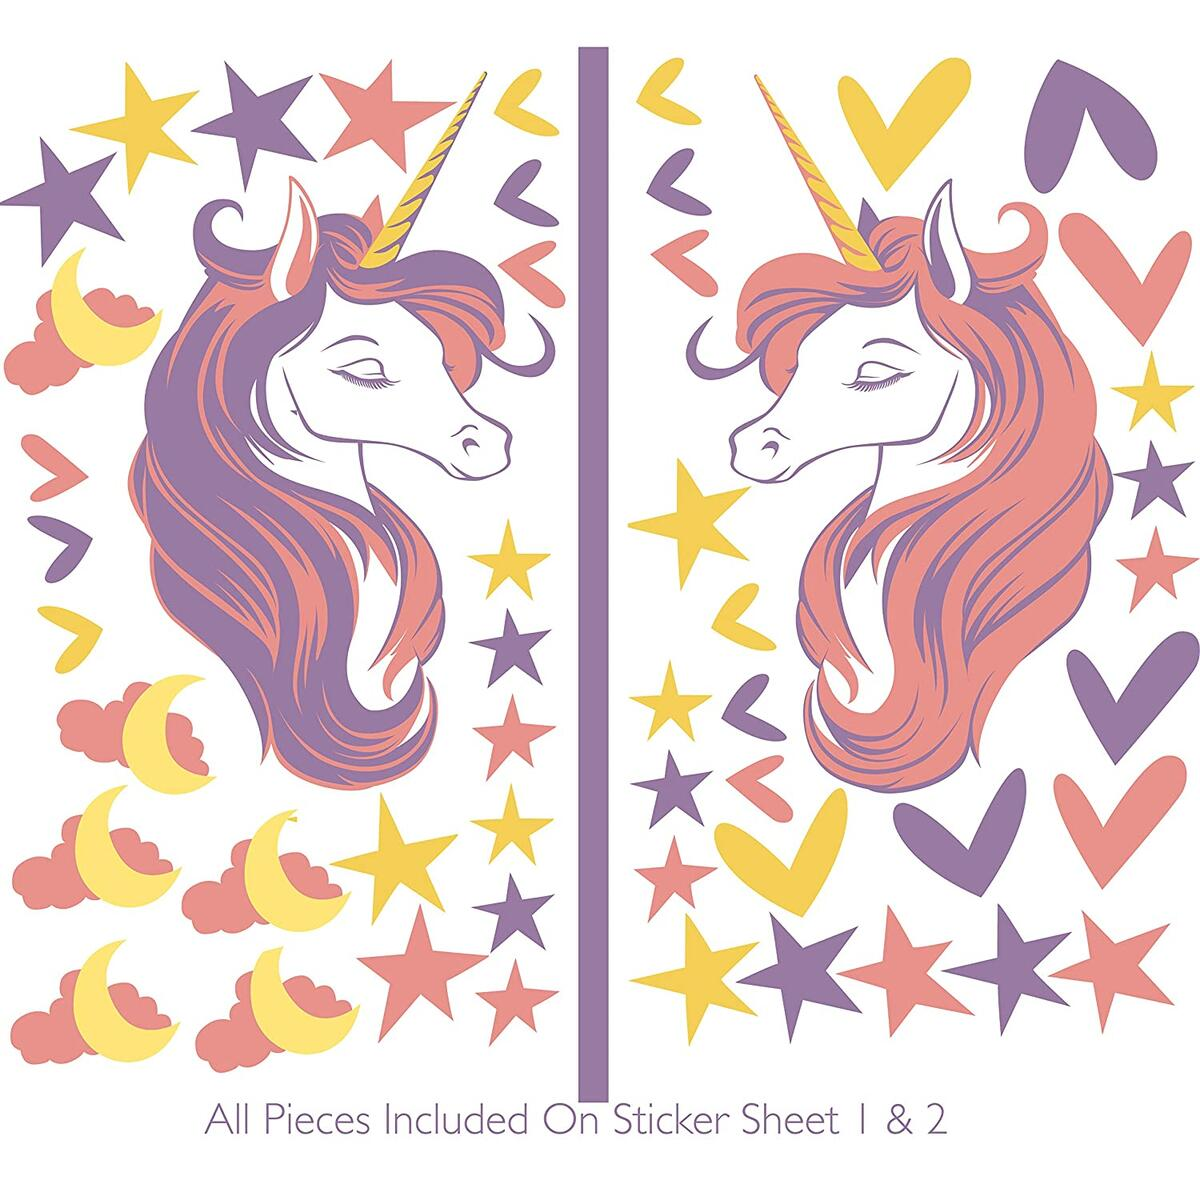 Pretty Unicorn Faces Wall Decal Sticker Set with Hearts, Stars, Clouds, Moon for Girls Party, Bedroom, Nursery (Self Adhesive) Glossy PVC